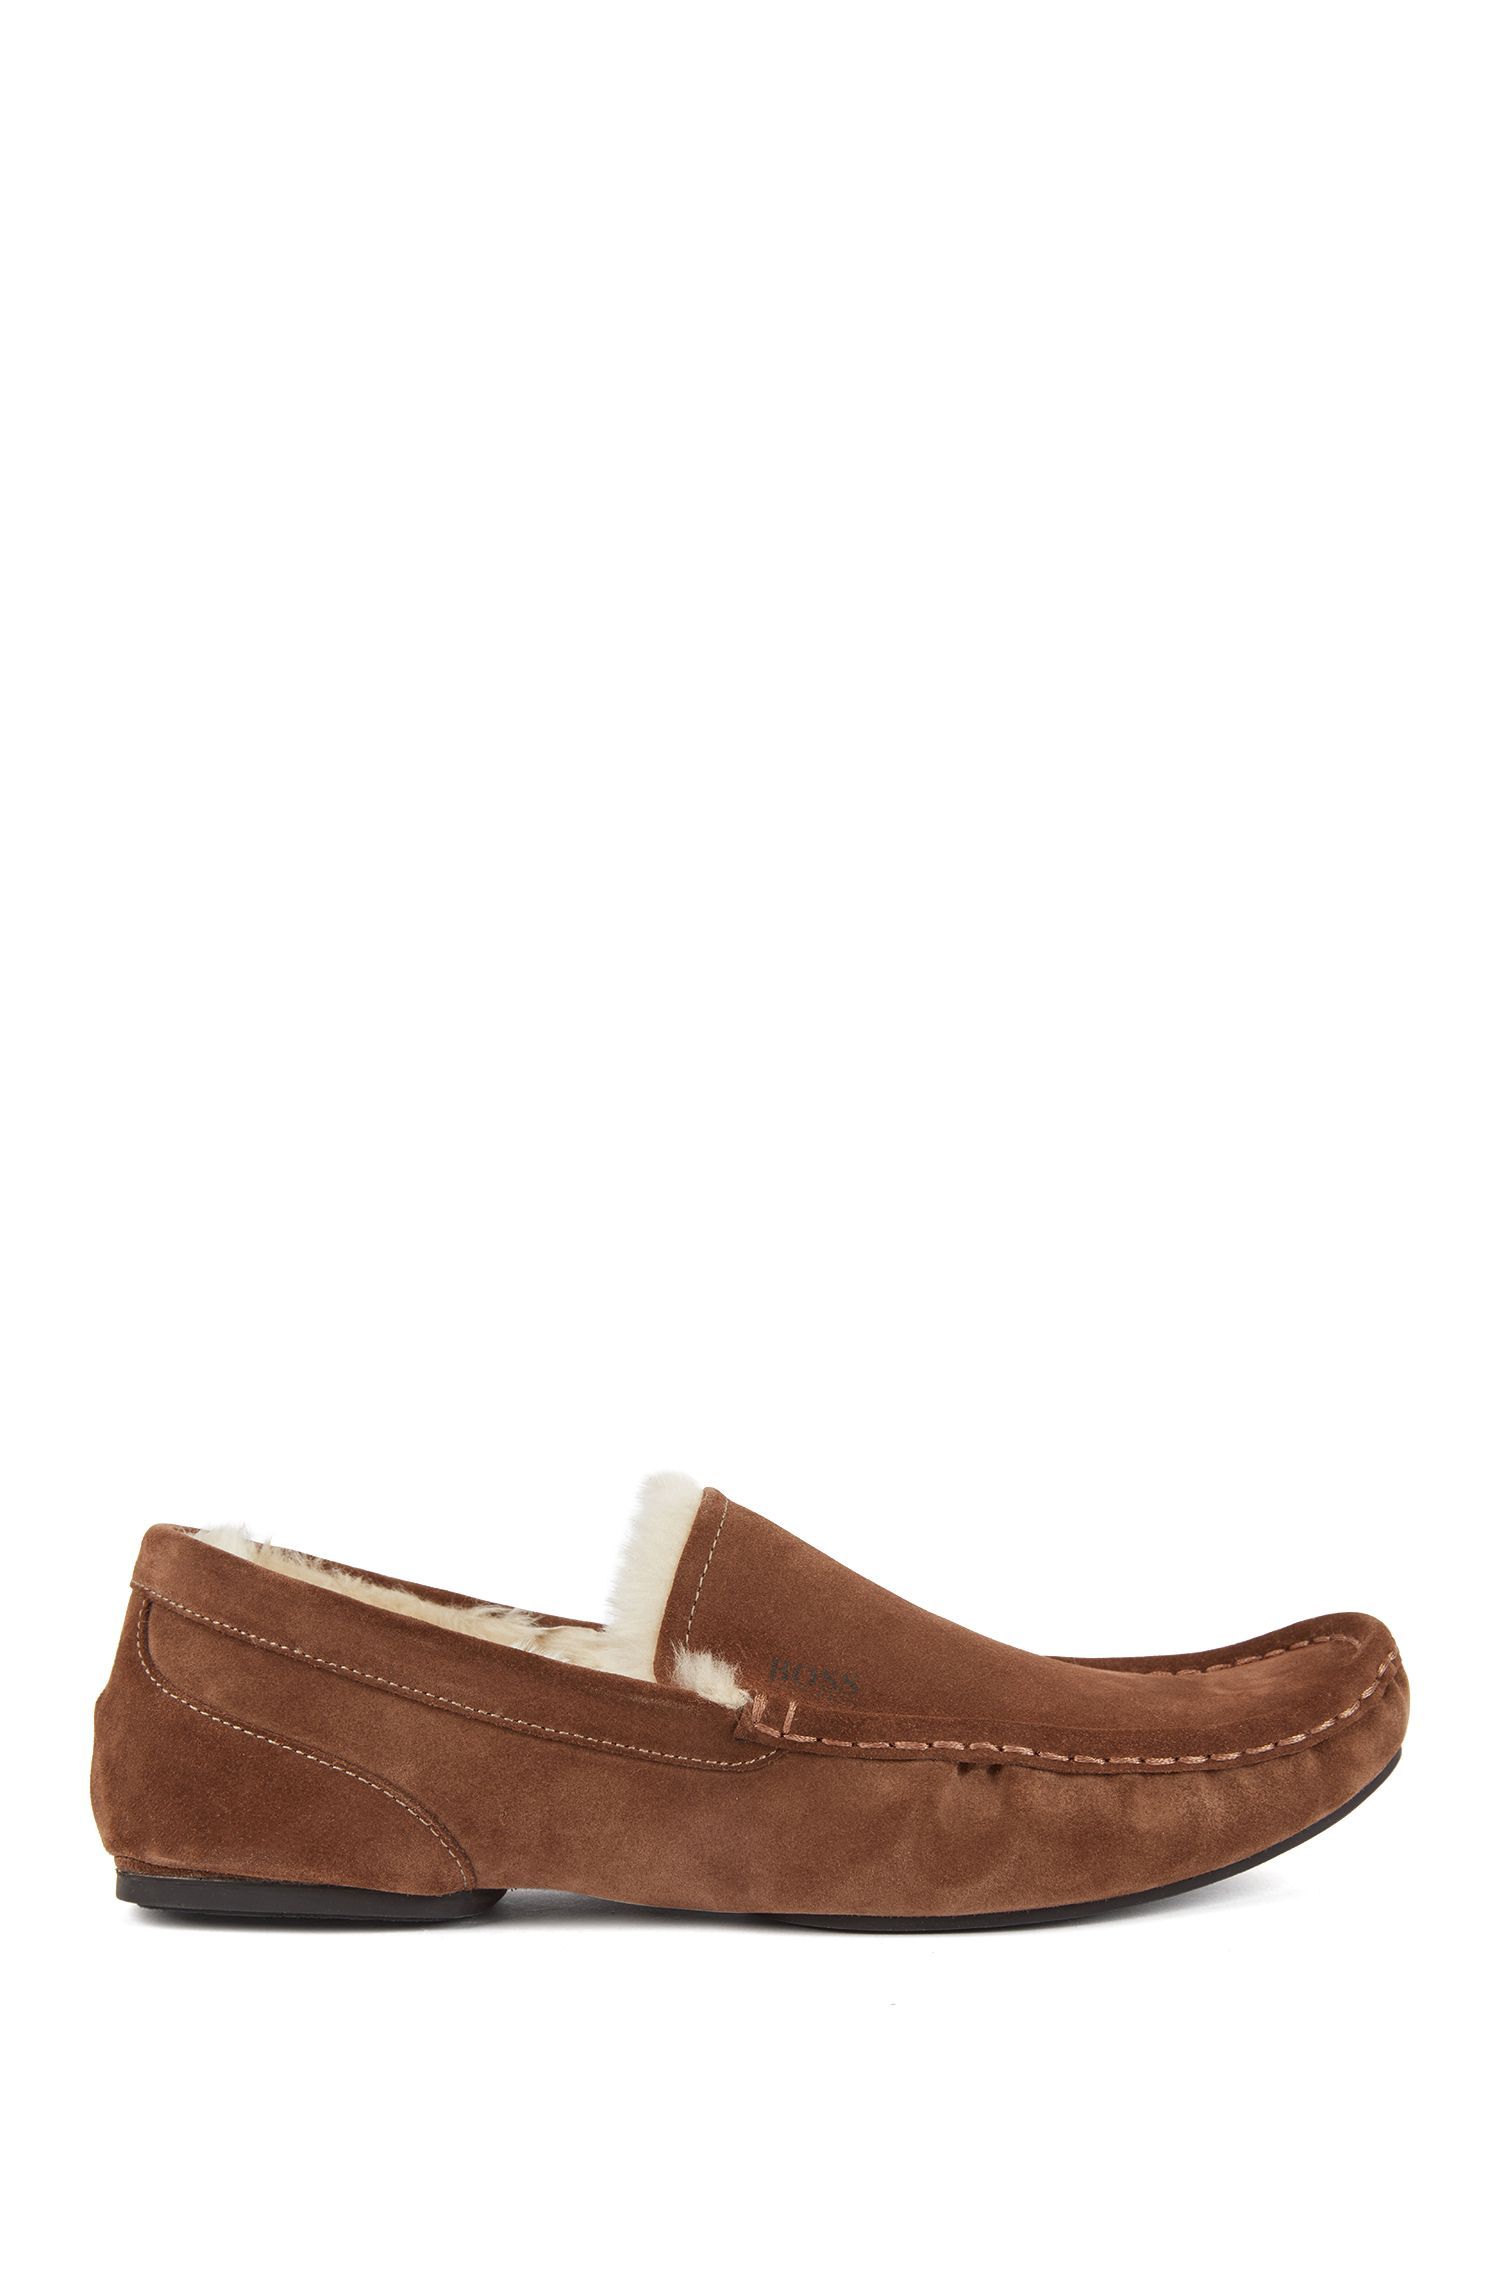 Slip-on moccasins in suede with a rubber sole, Brown